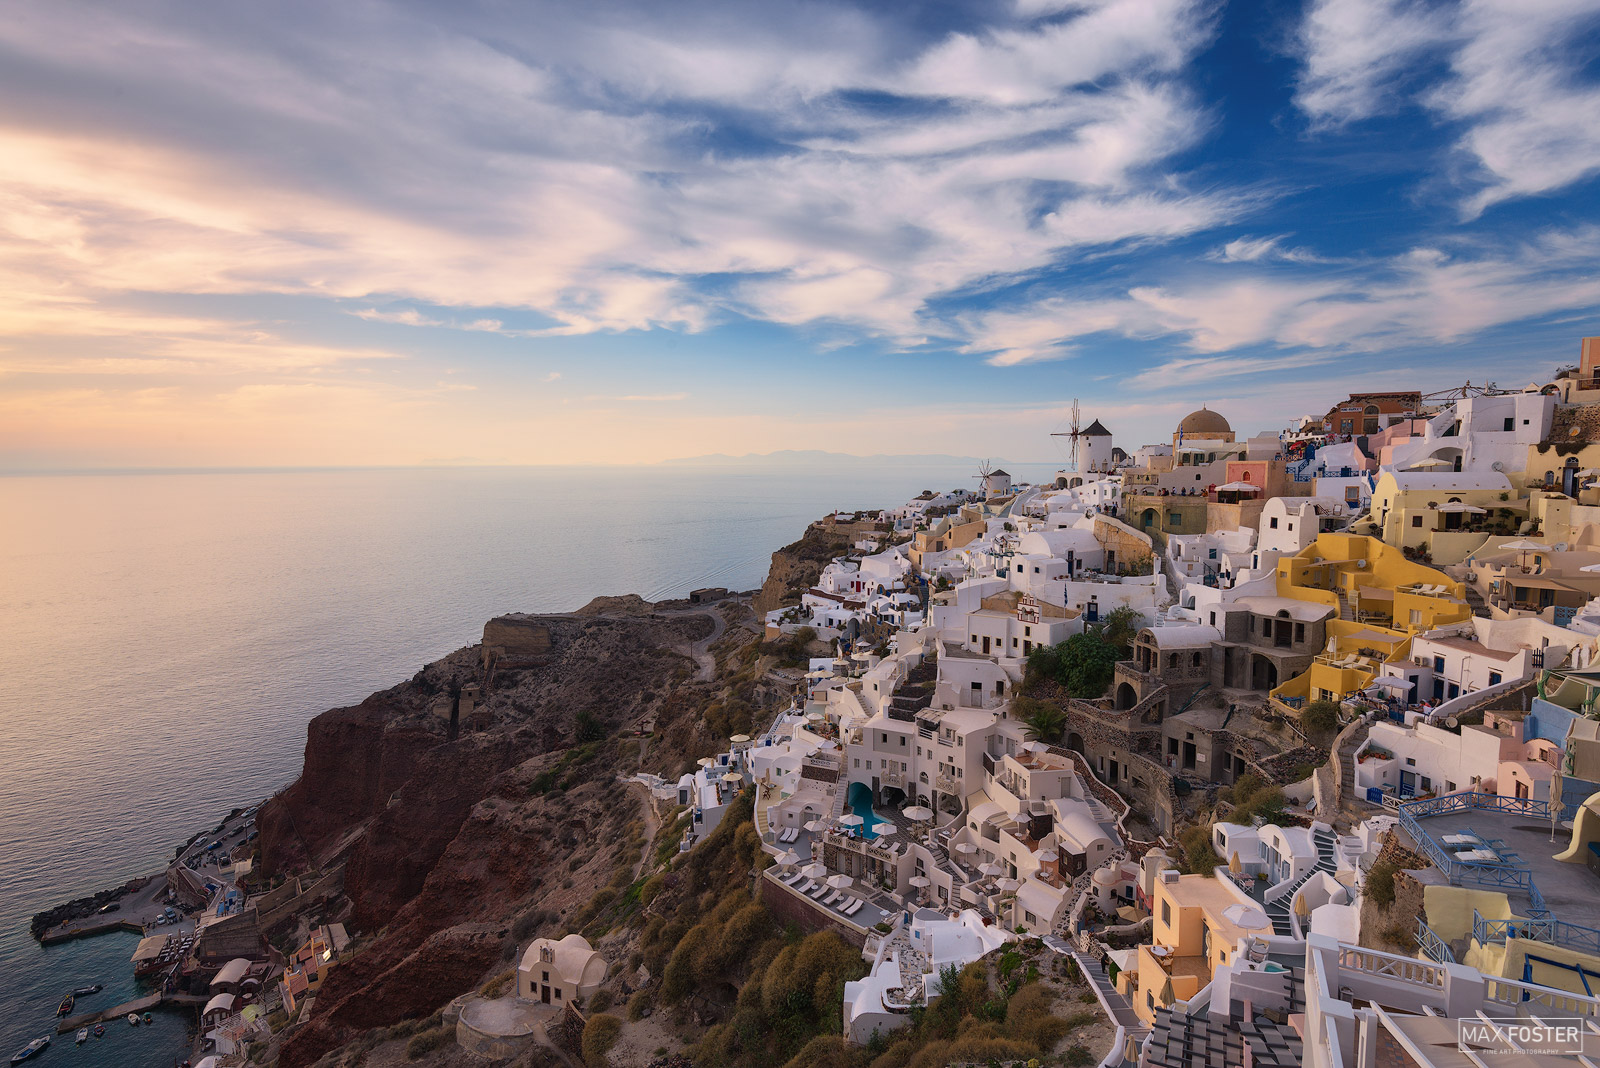 Oia Skyline, Santorini Sunset, Greece, Wish You Were Here, Greek Island, Aegean Sea, Cyclades, photo